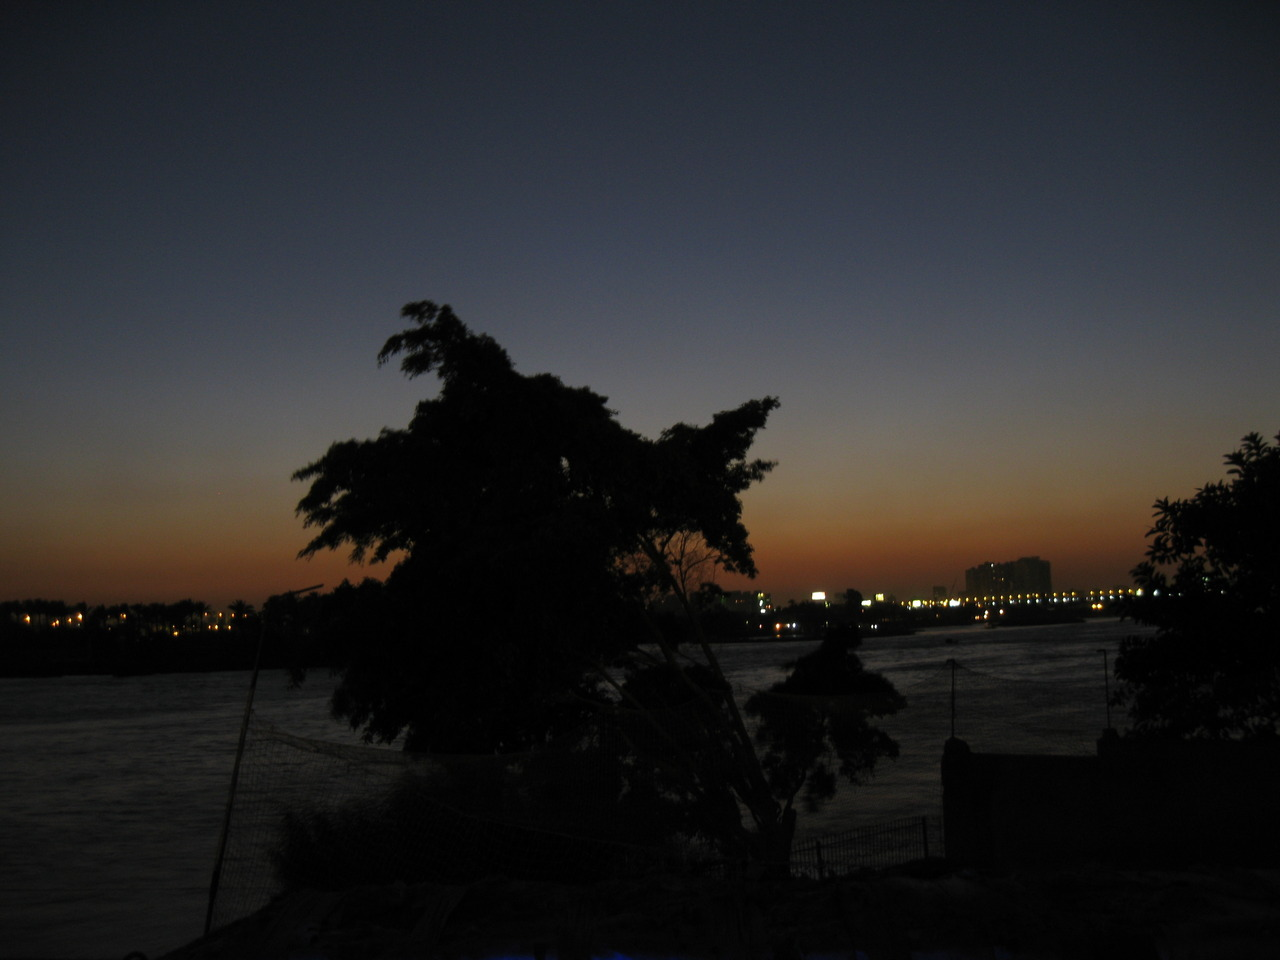 Nile's sunset.